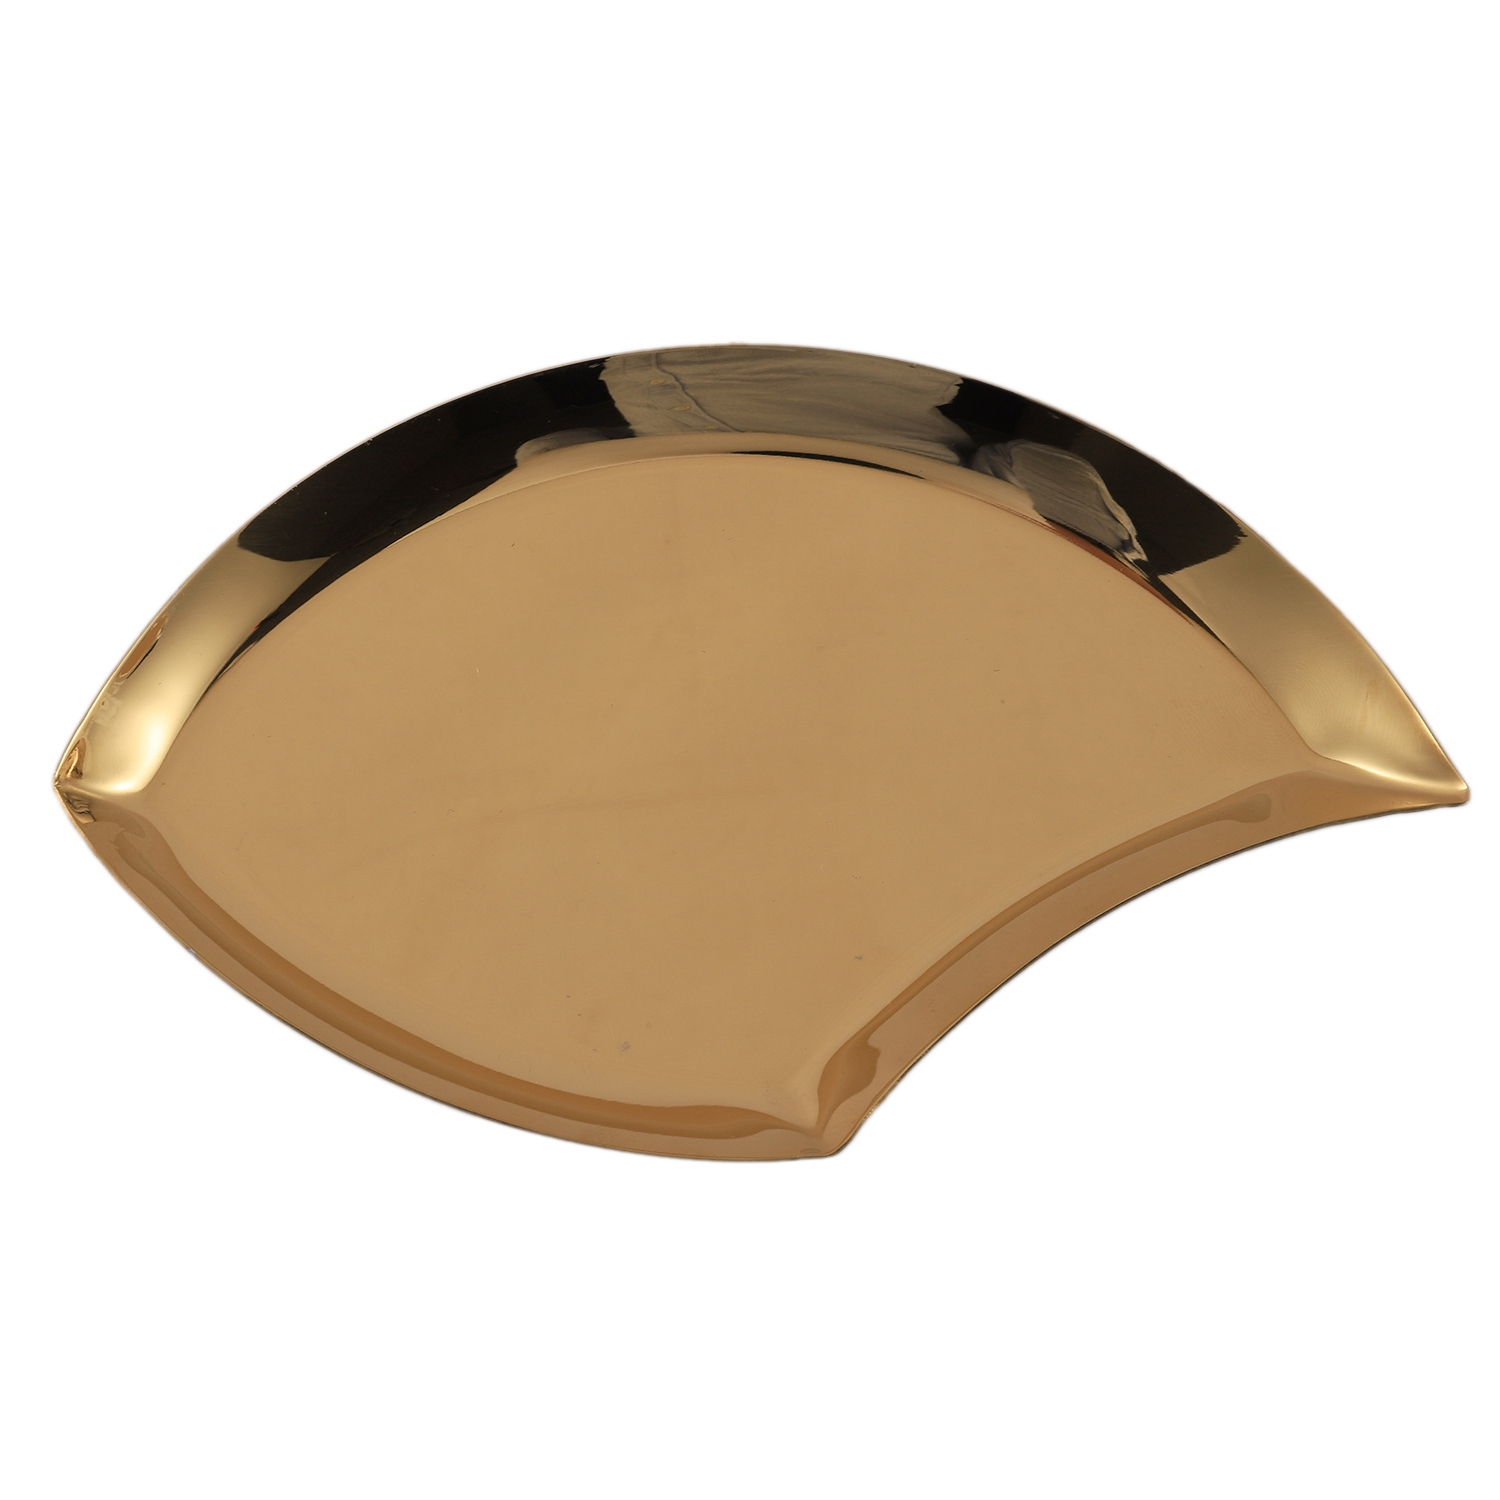 Silver Gold Dish Fruit Plates Snack Cake Serving Tray Stainless Steel Dishes Wedding Decoration Dessert Trays Gold Gold Buy Online At Best Prices In Bangladesh Daraz Com Bd